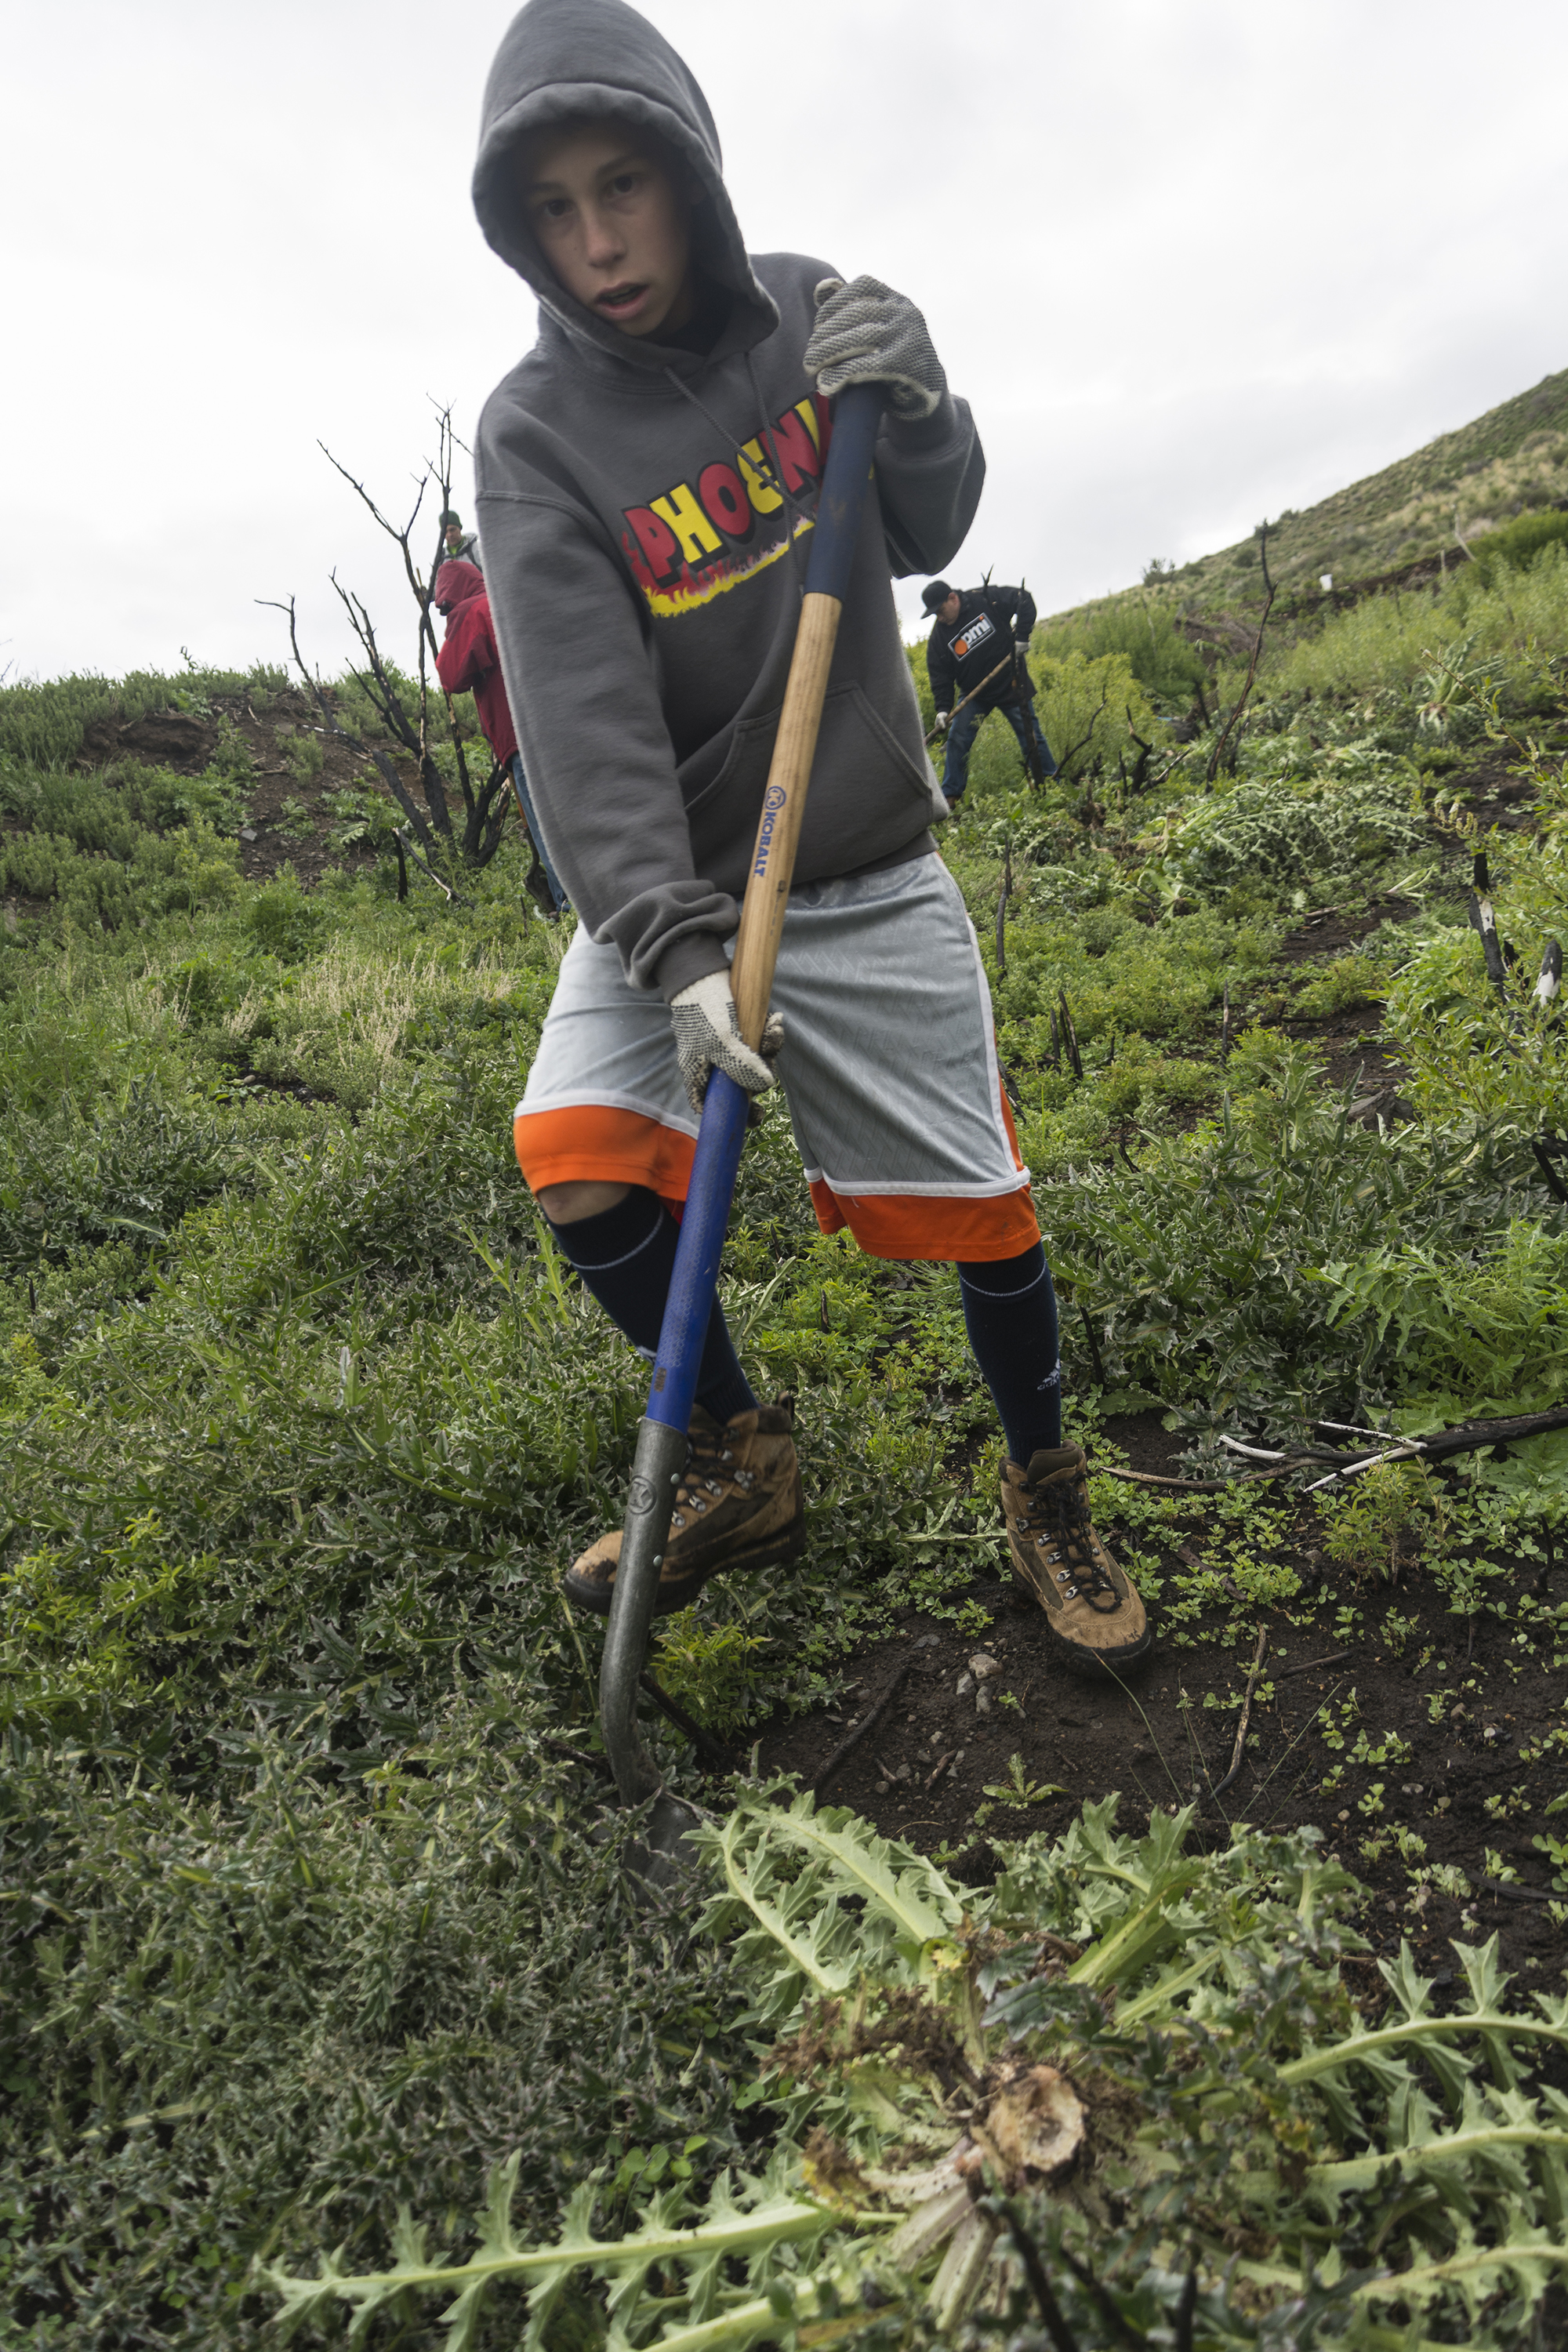 great-community-clean-up---mt-rose-wilderness-weed-warriors_26194047303_o.jpg